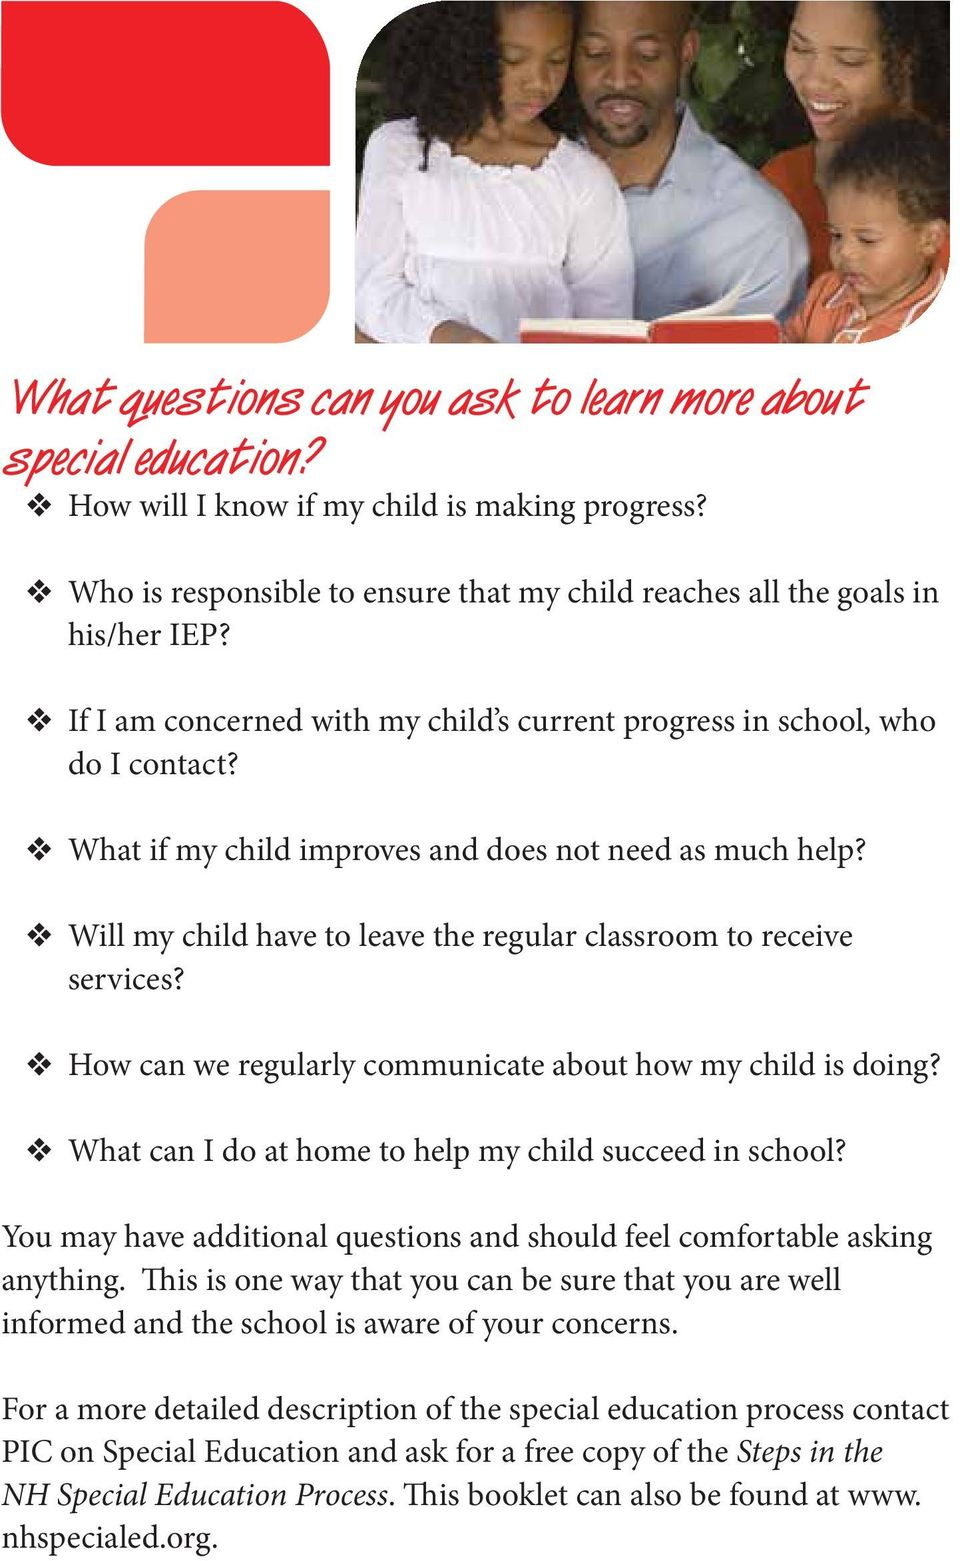 Will my child have to leave the regular classroom to receive services? How can we regularly communicate about how my child is doing? What can I do at home to help my child succeed in school?